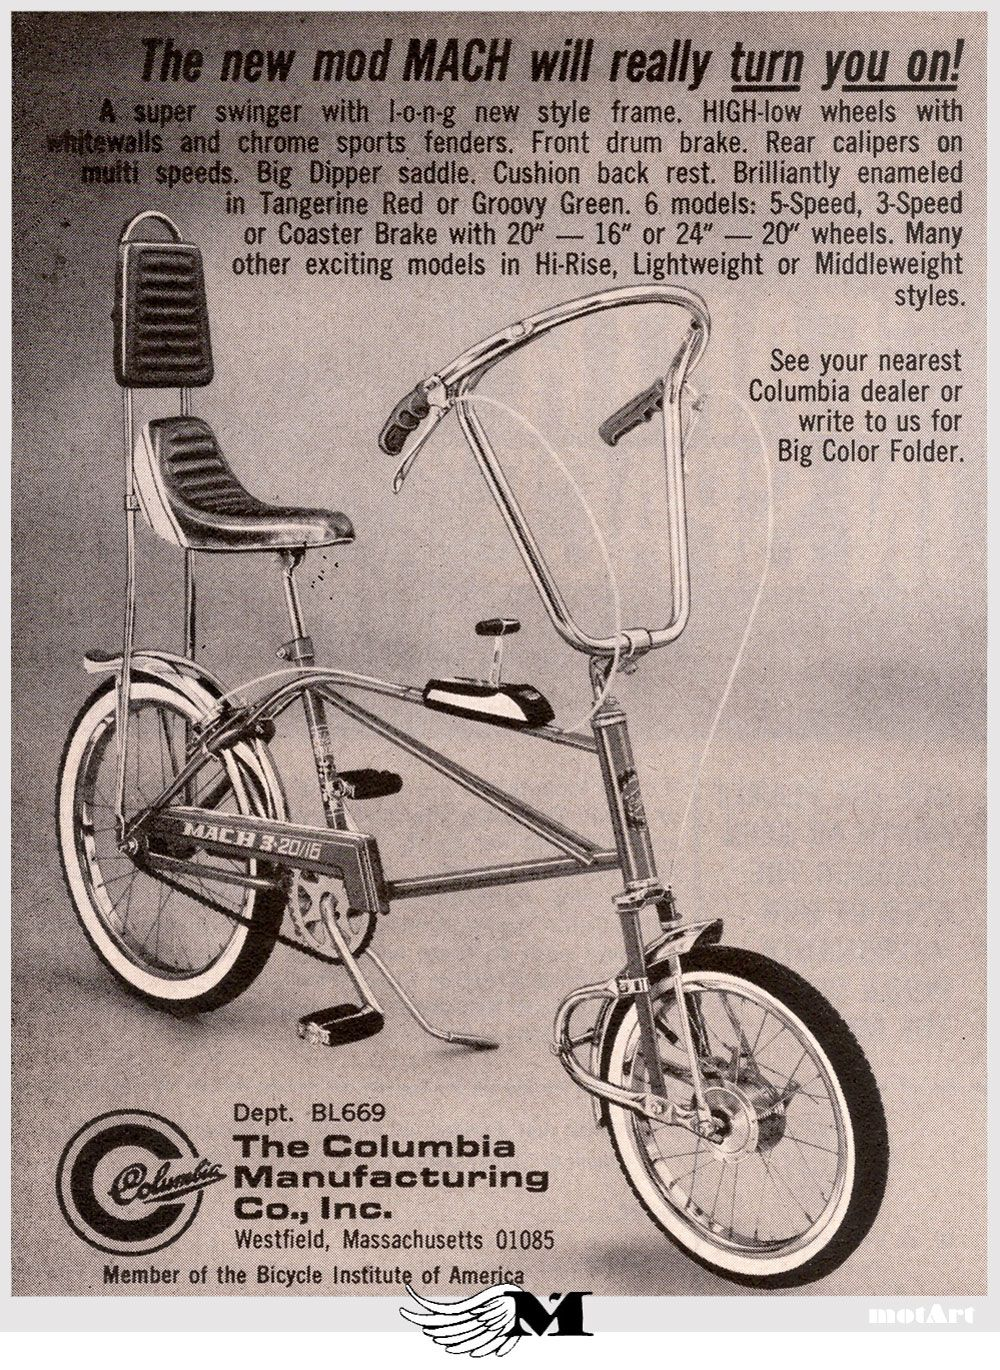 By the late 60's the muscle bike wars continued to produce